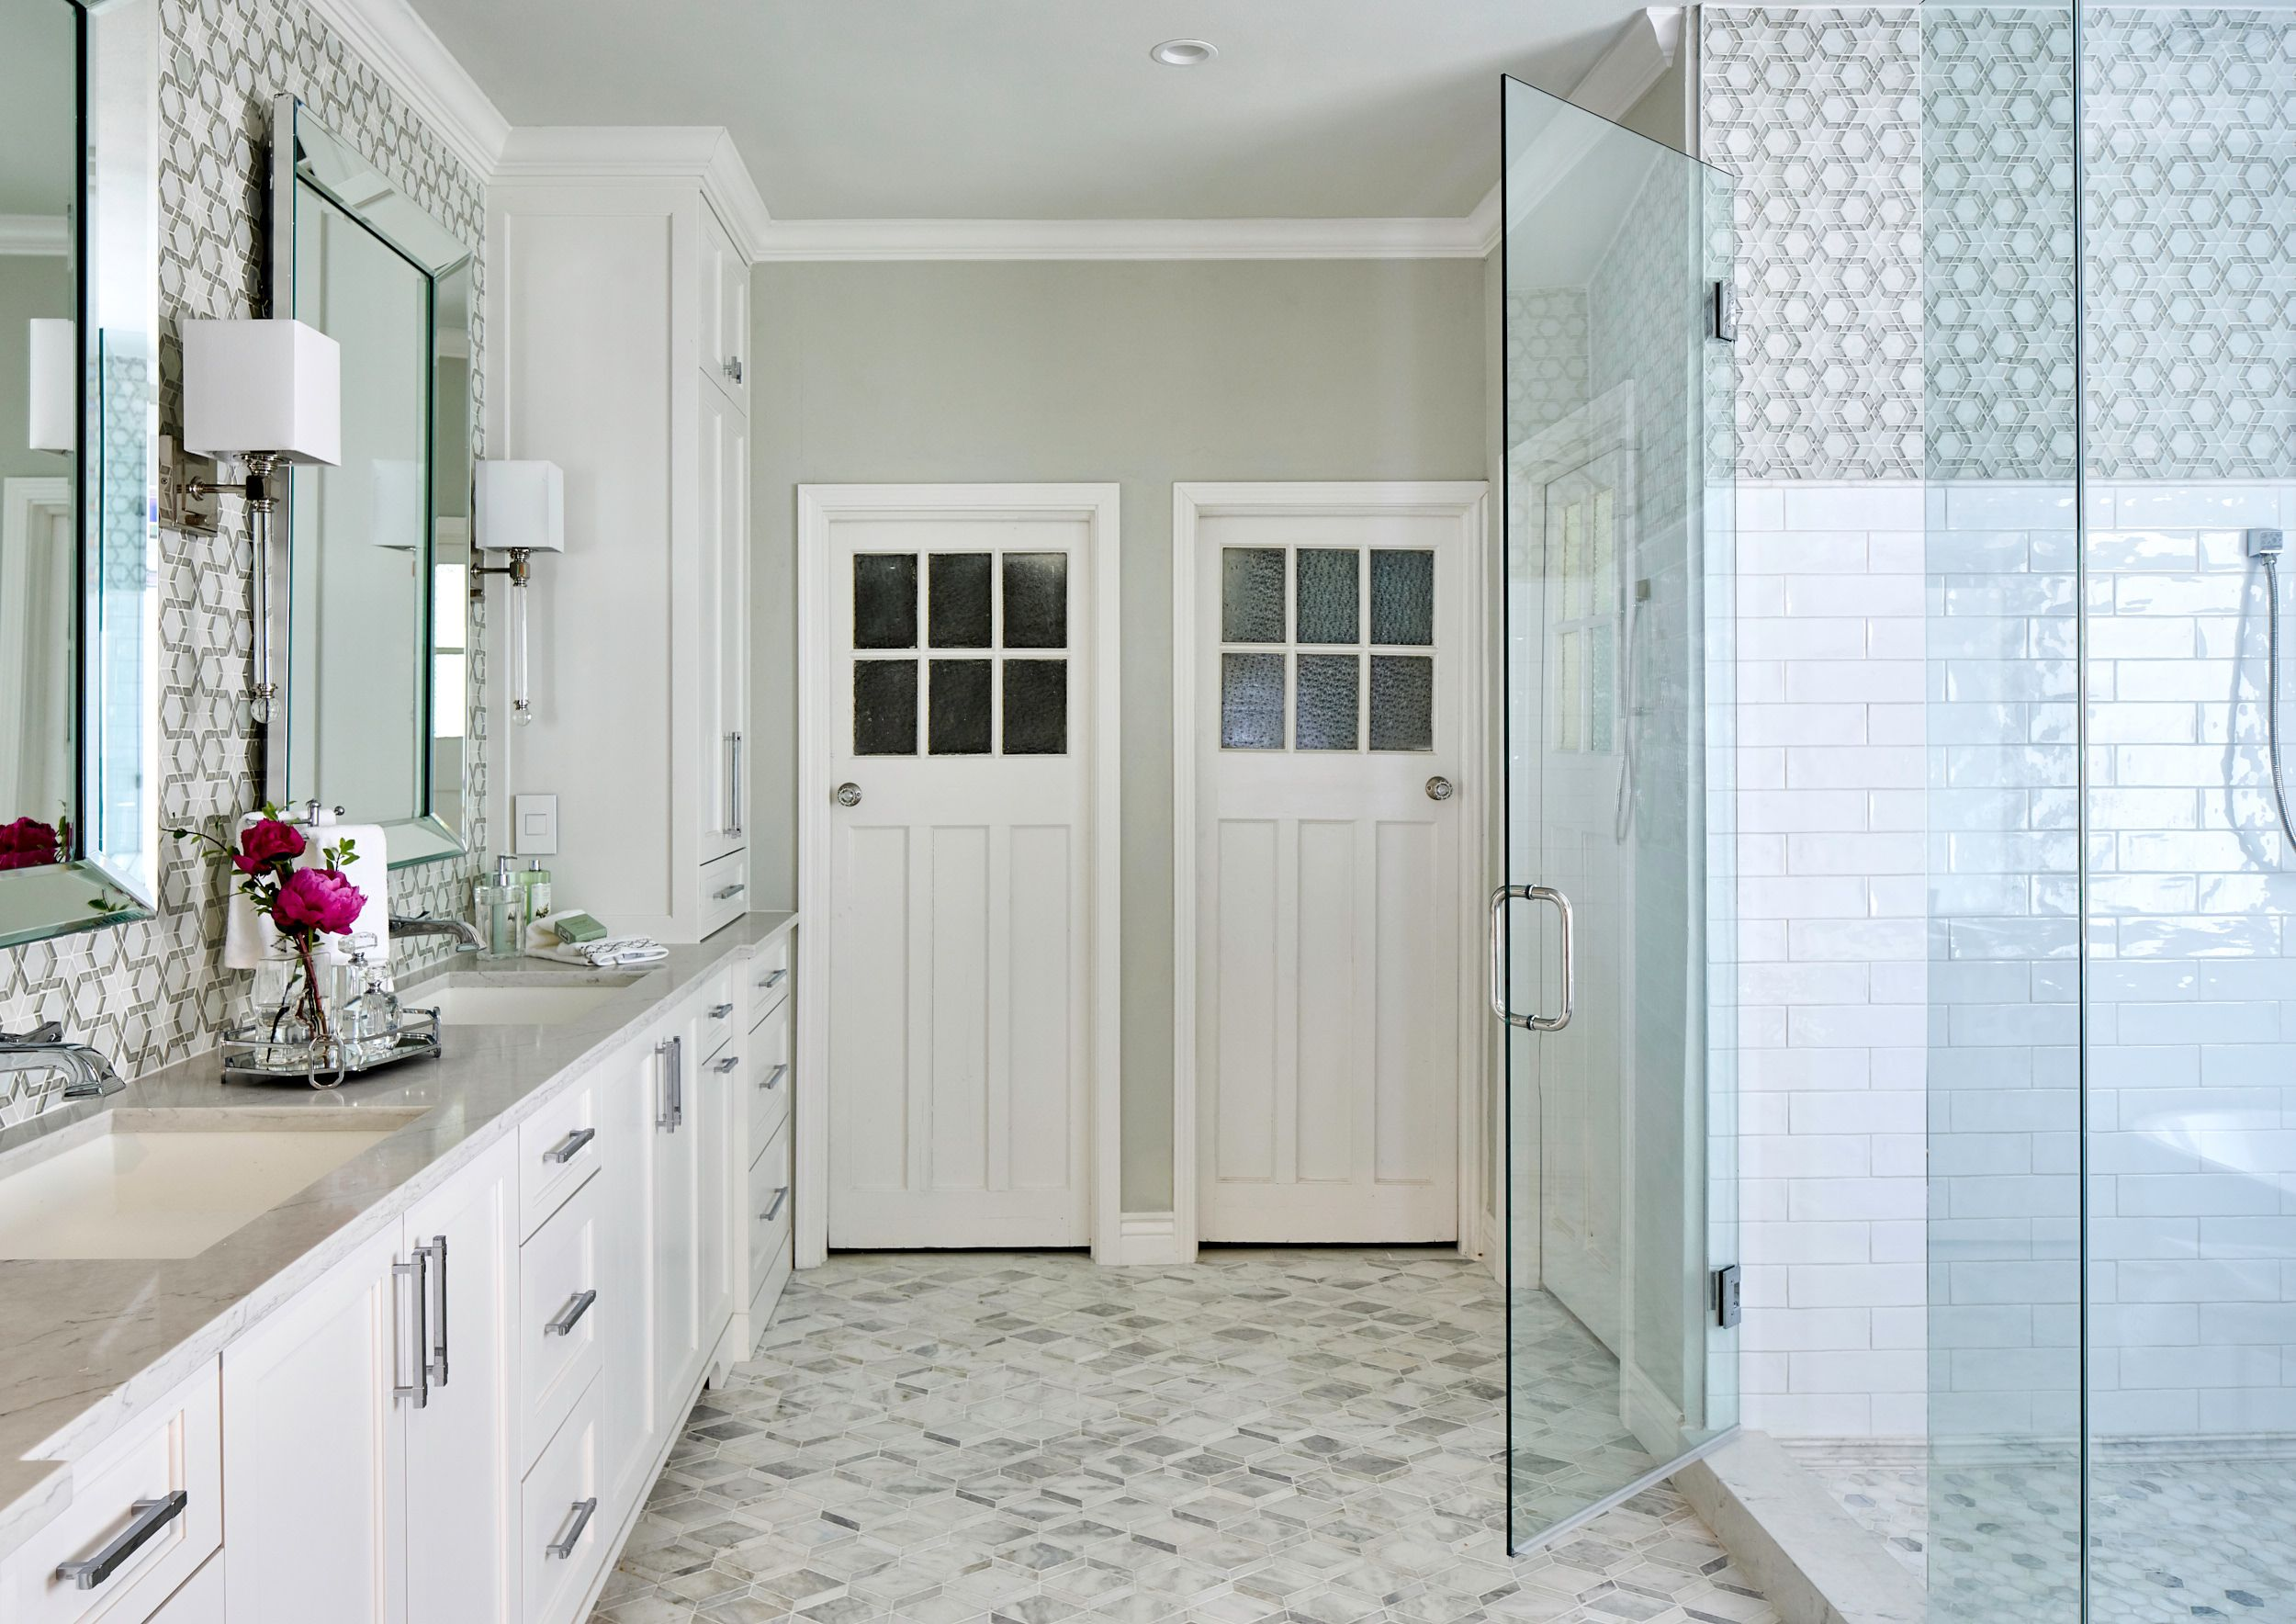 Spa Bathroom With White Cabinets Mosaic Wall Tile Regina Andrews